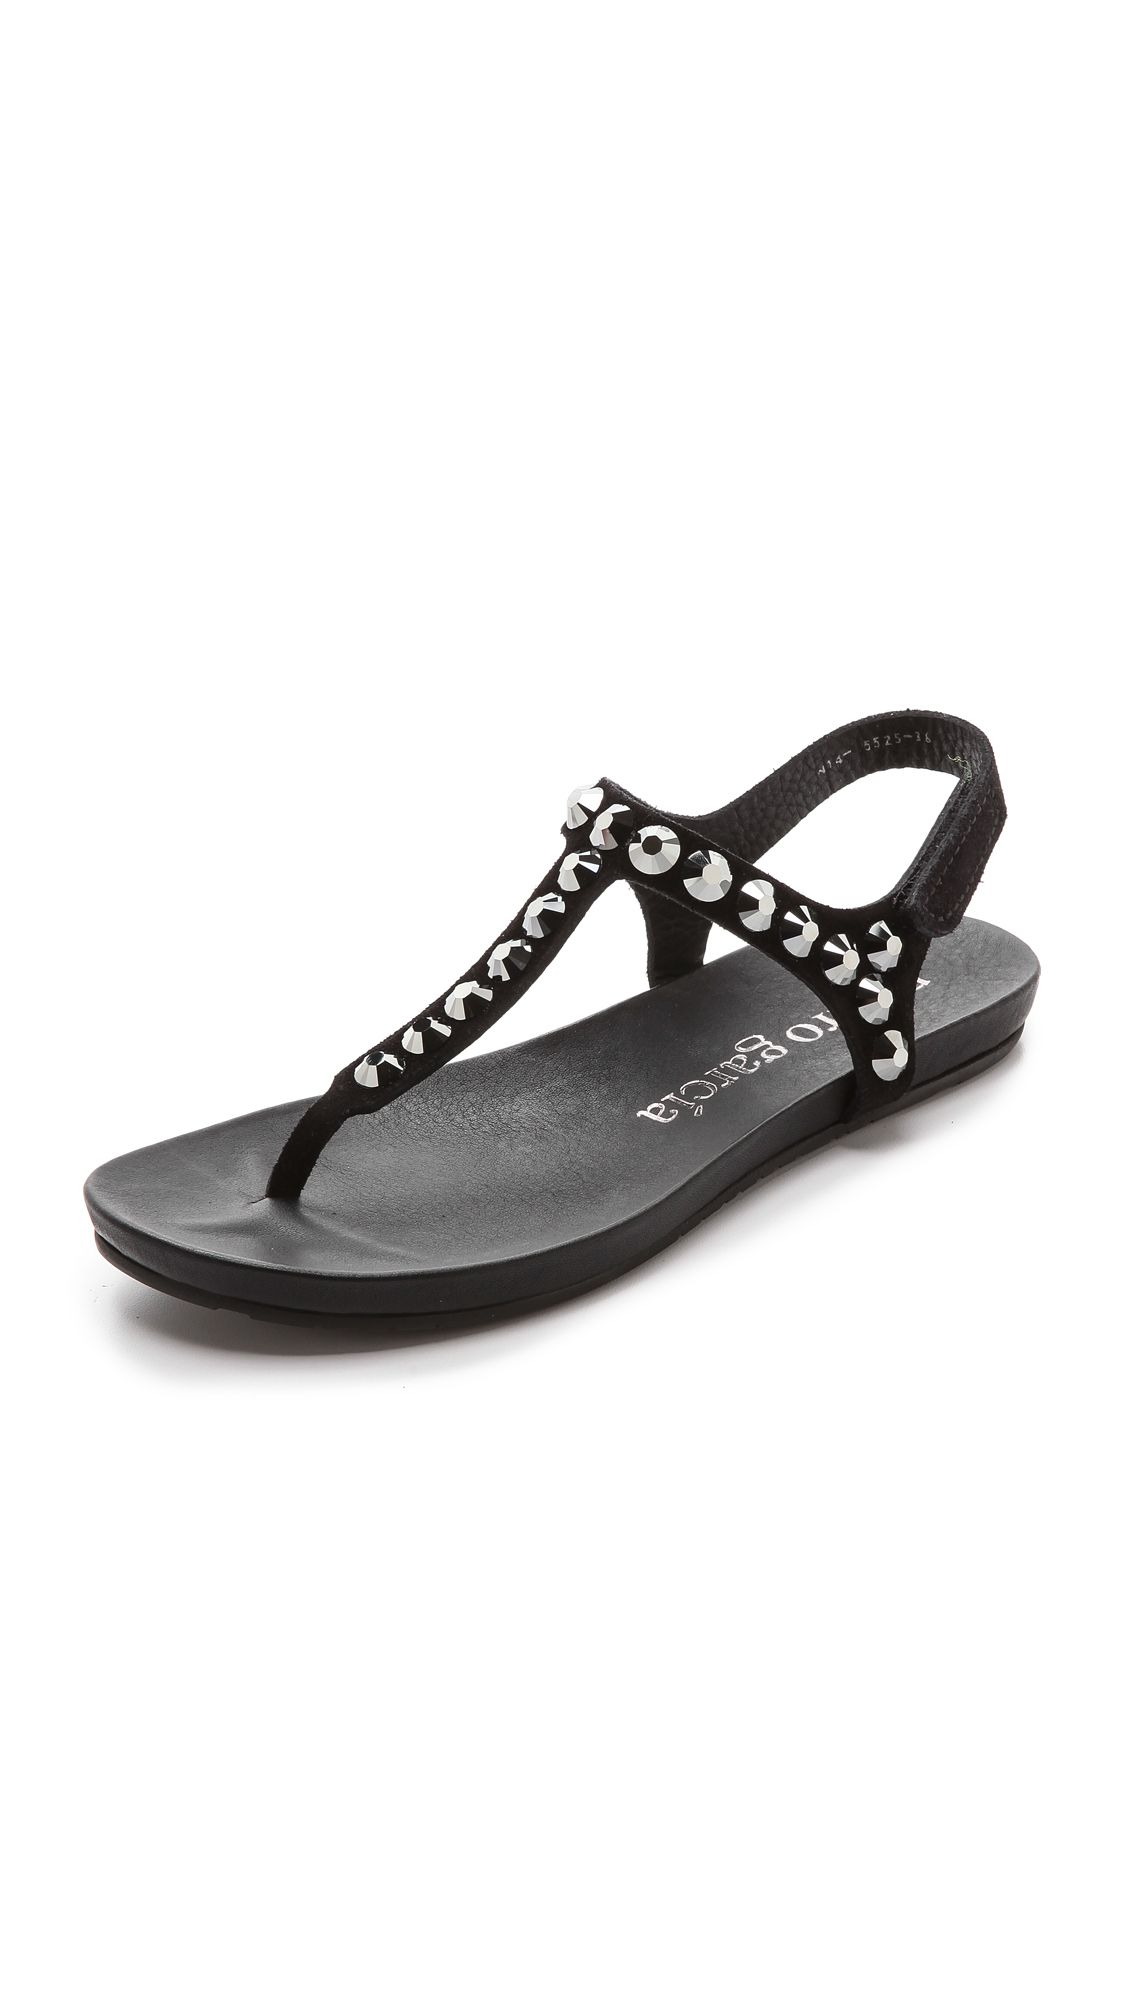 discount clearance Pedro Garcia Suede Jewel-Embellished Sandals discount latest cheap popular discount footlocker outlet visa payment pY0KGP4